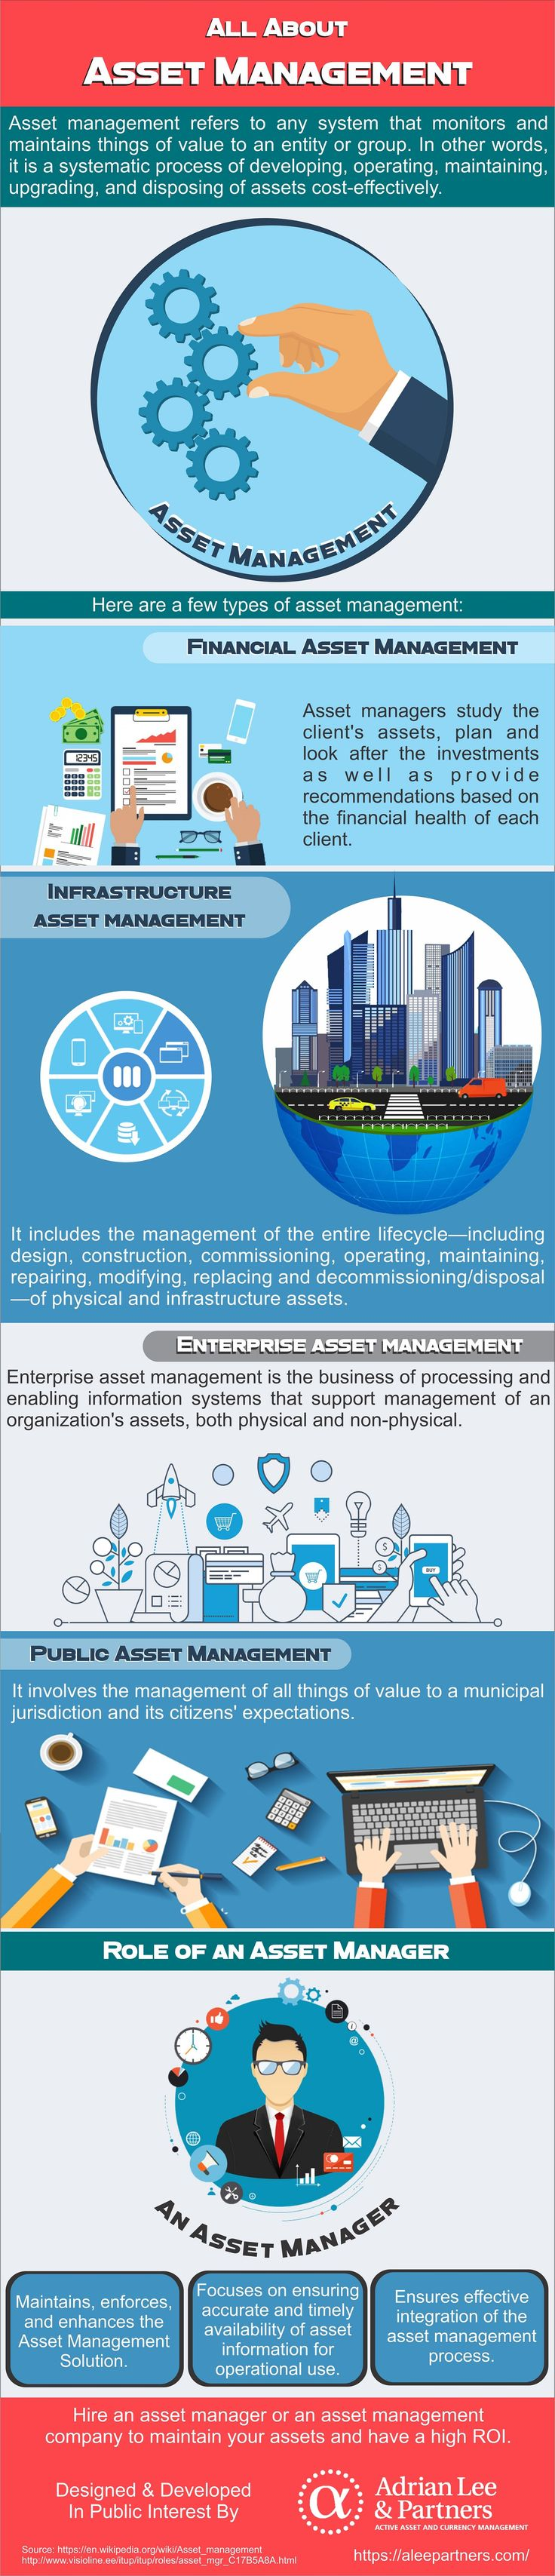 ll about Asset Management Asset management refers to any system that monitors and maintains things of value to an entity or group. In other words, it is a systematic process of developing, operating, maintaining, upgrading, and disposing of assets cost-effectively.